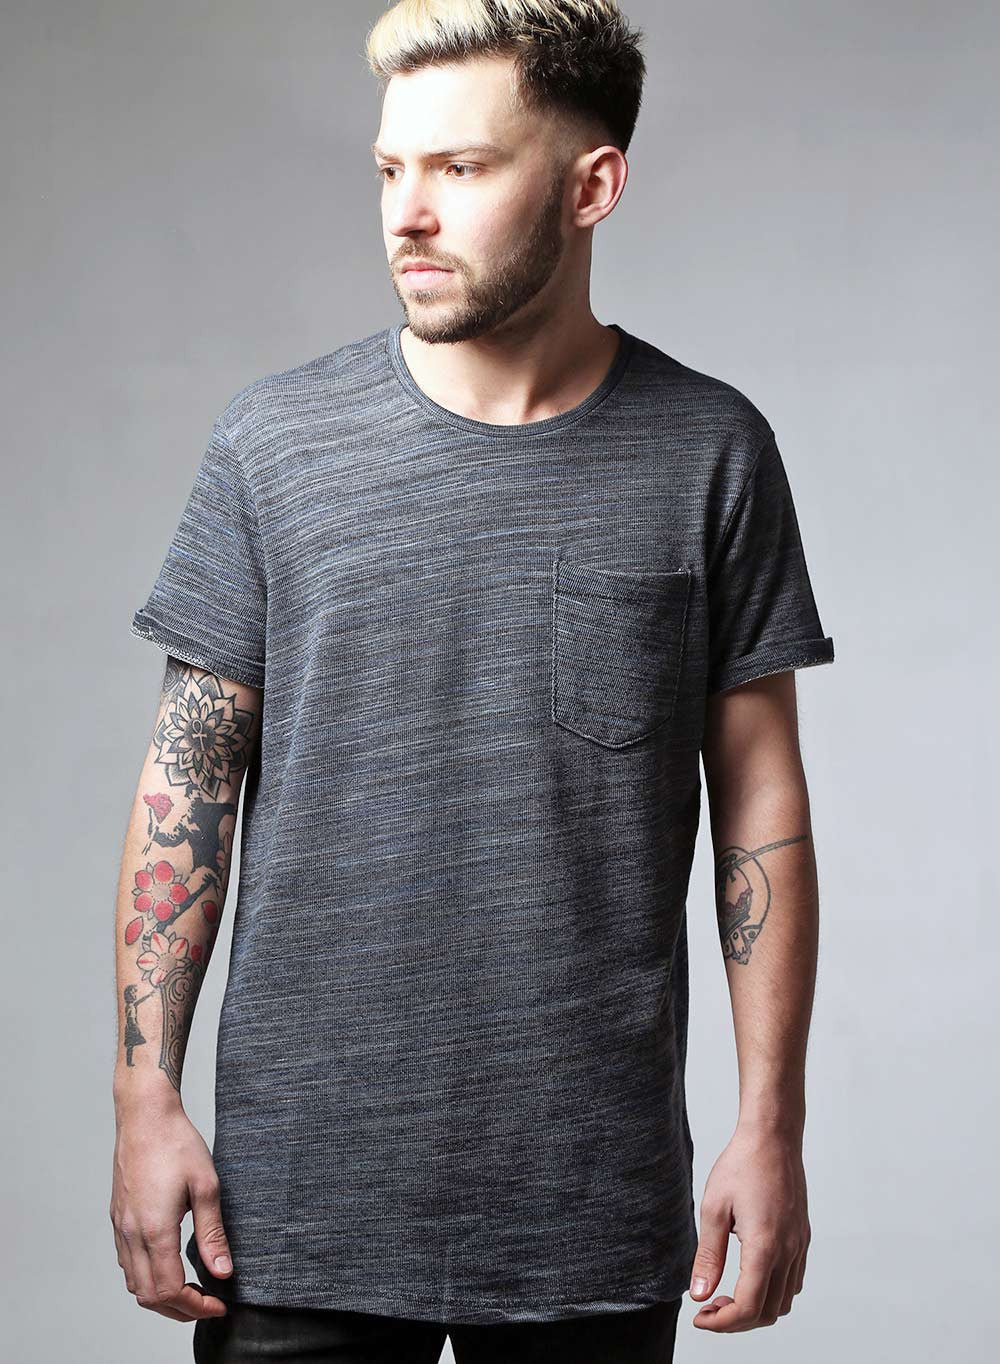 Heavy Knit Textured T-shirt - LoveClothing.com - 1